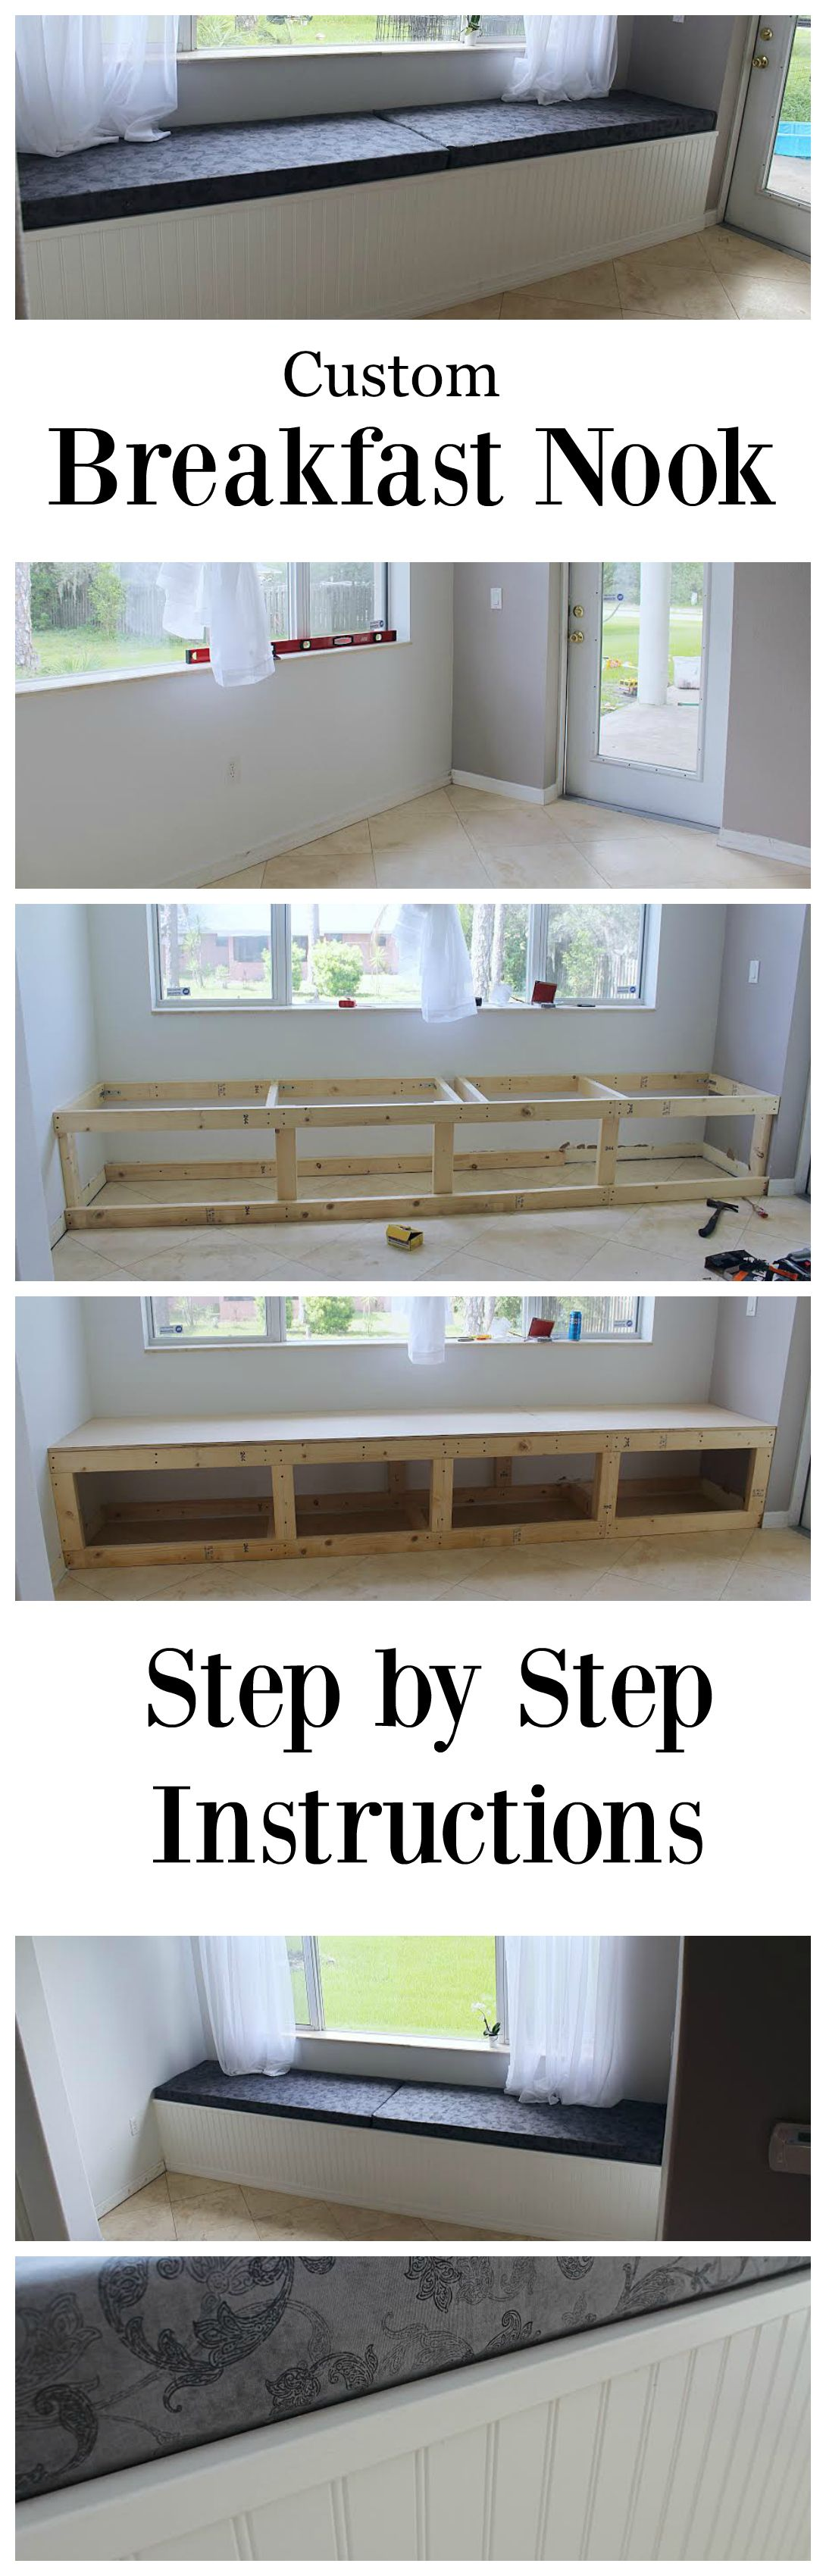 Steps to building a custom home - How To Build A Custom Breakfast Nook For Your Home